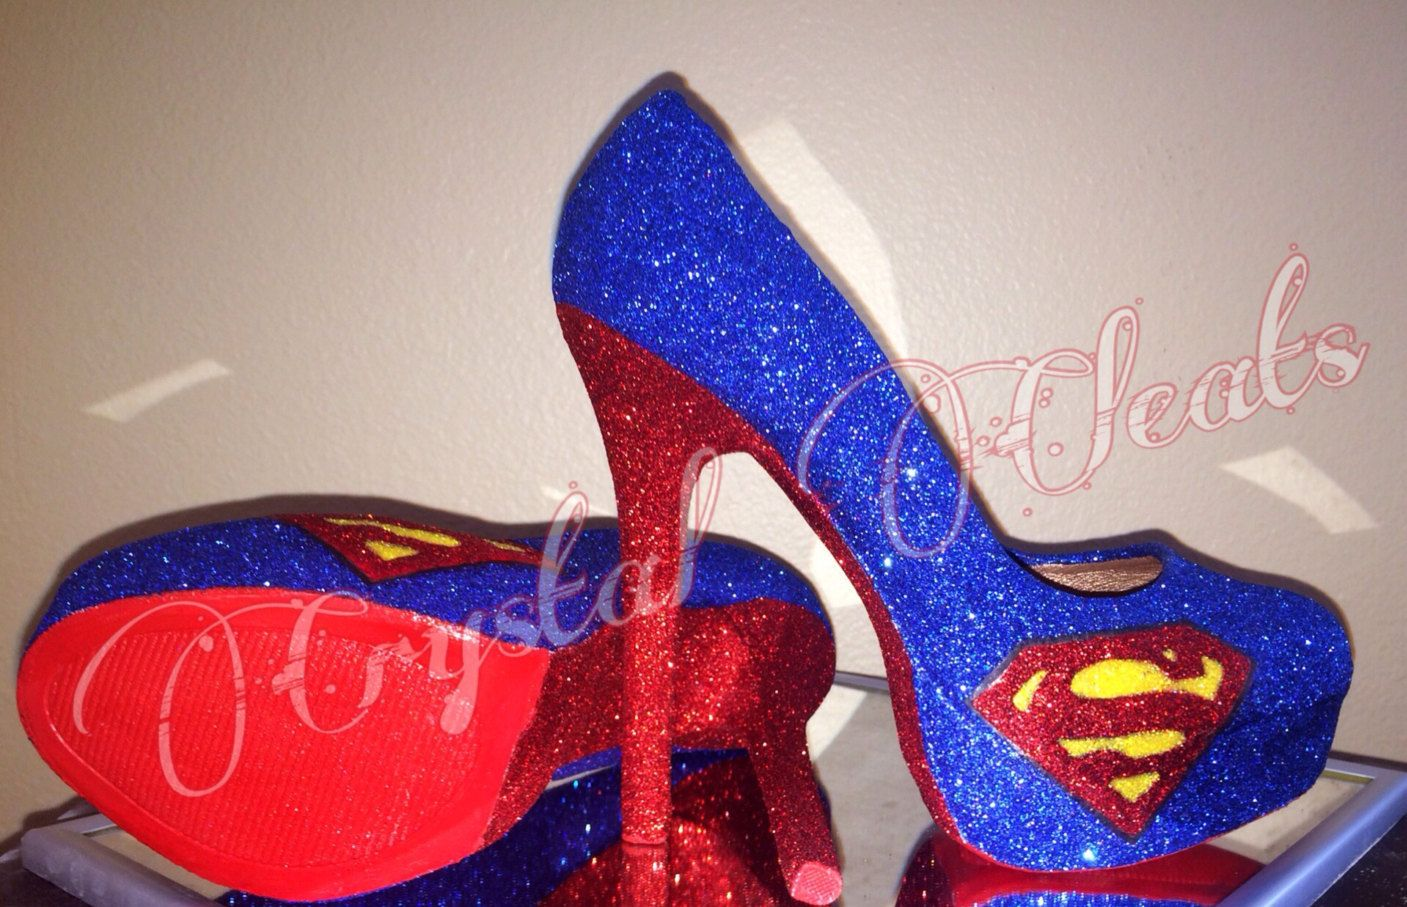 25edaeded2f6 HALLOWEEN SPECIAL! Superman super woman high heel stiletto shoes sparkly  glitter in Blue red yellow or choose your colors by CrystalCleatss on Etsy